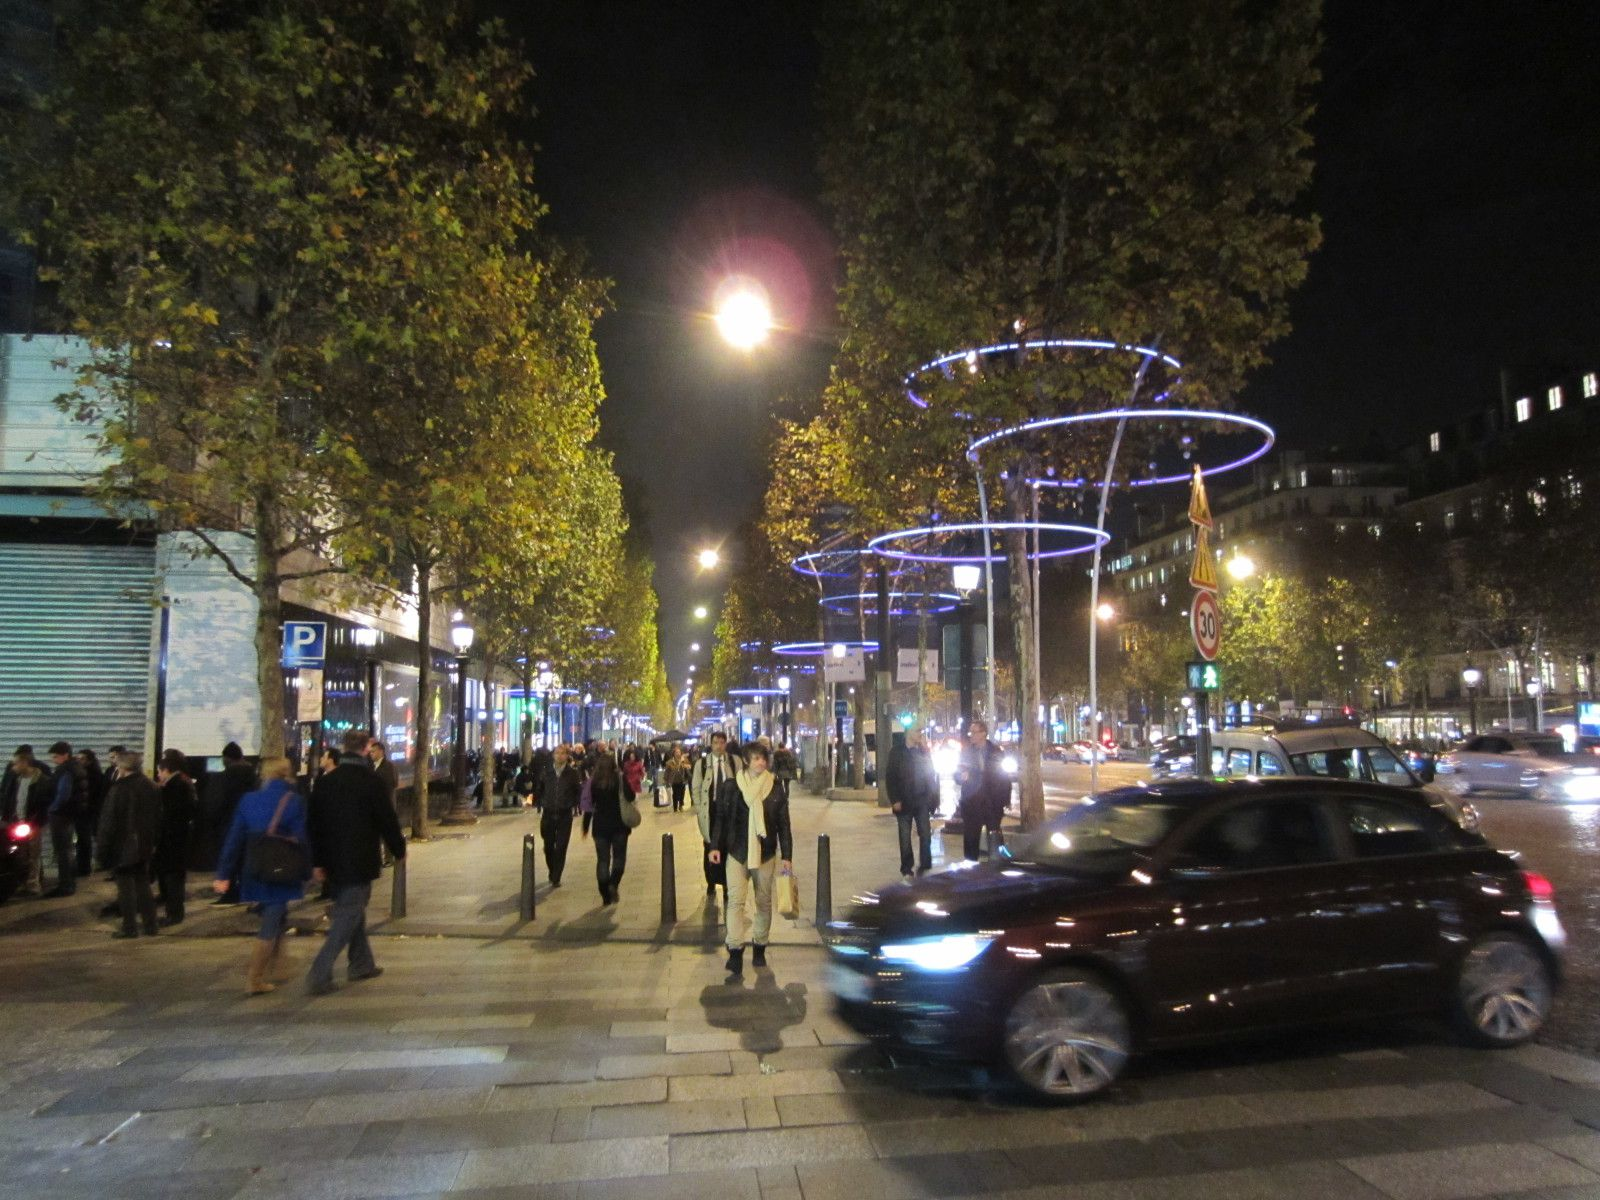 #8A7542 ImmoAlternativ€: Avenue Des Champs Elysées Illuminations 2012 5365 decorations de noel champs elysees 1600x1200 px @ aertt.com